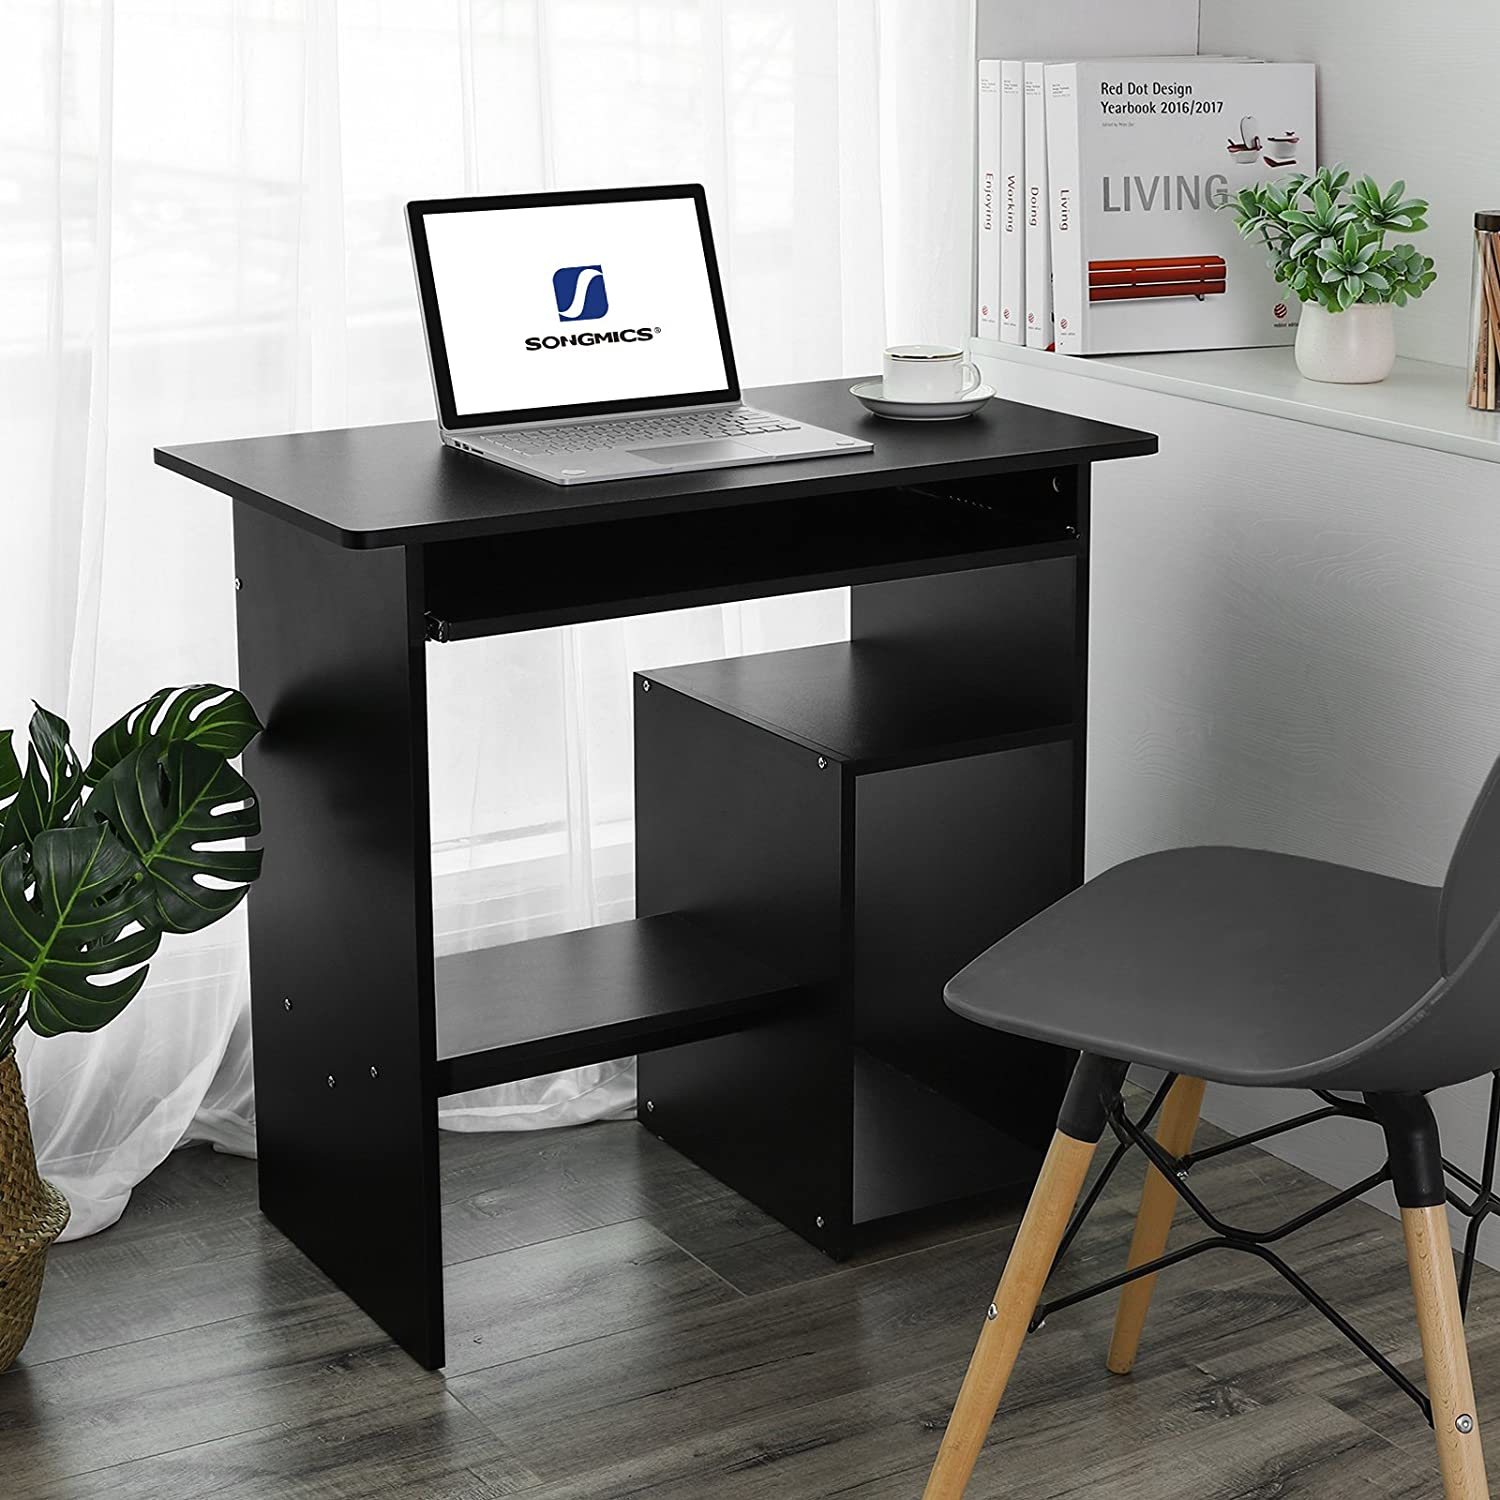 Amazoncom Songmics Computer Desk Study Writing Table Workstation For Home